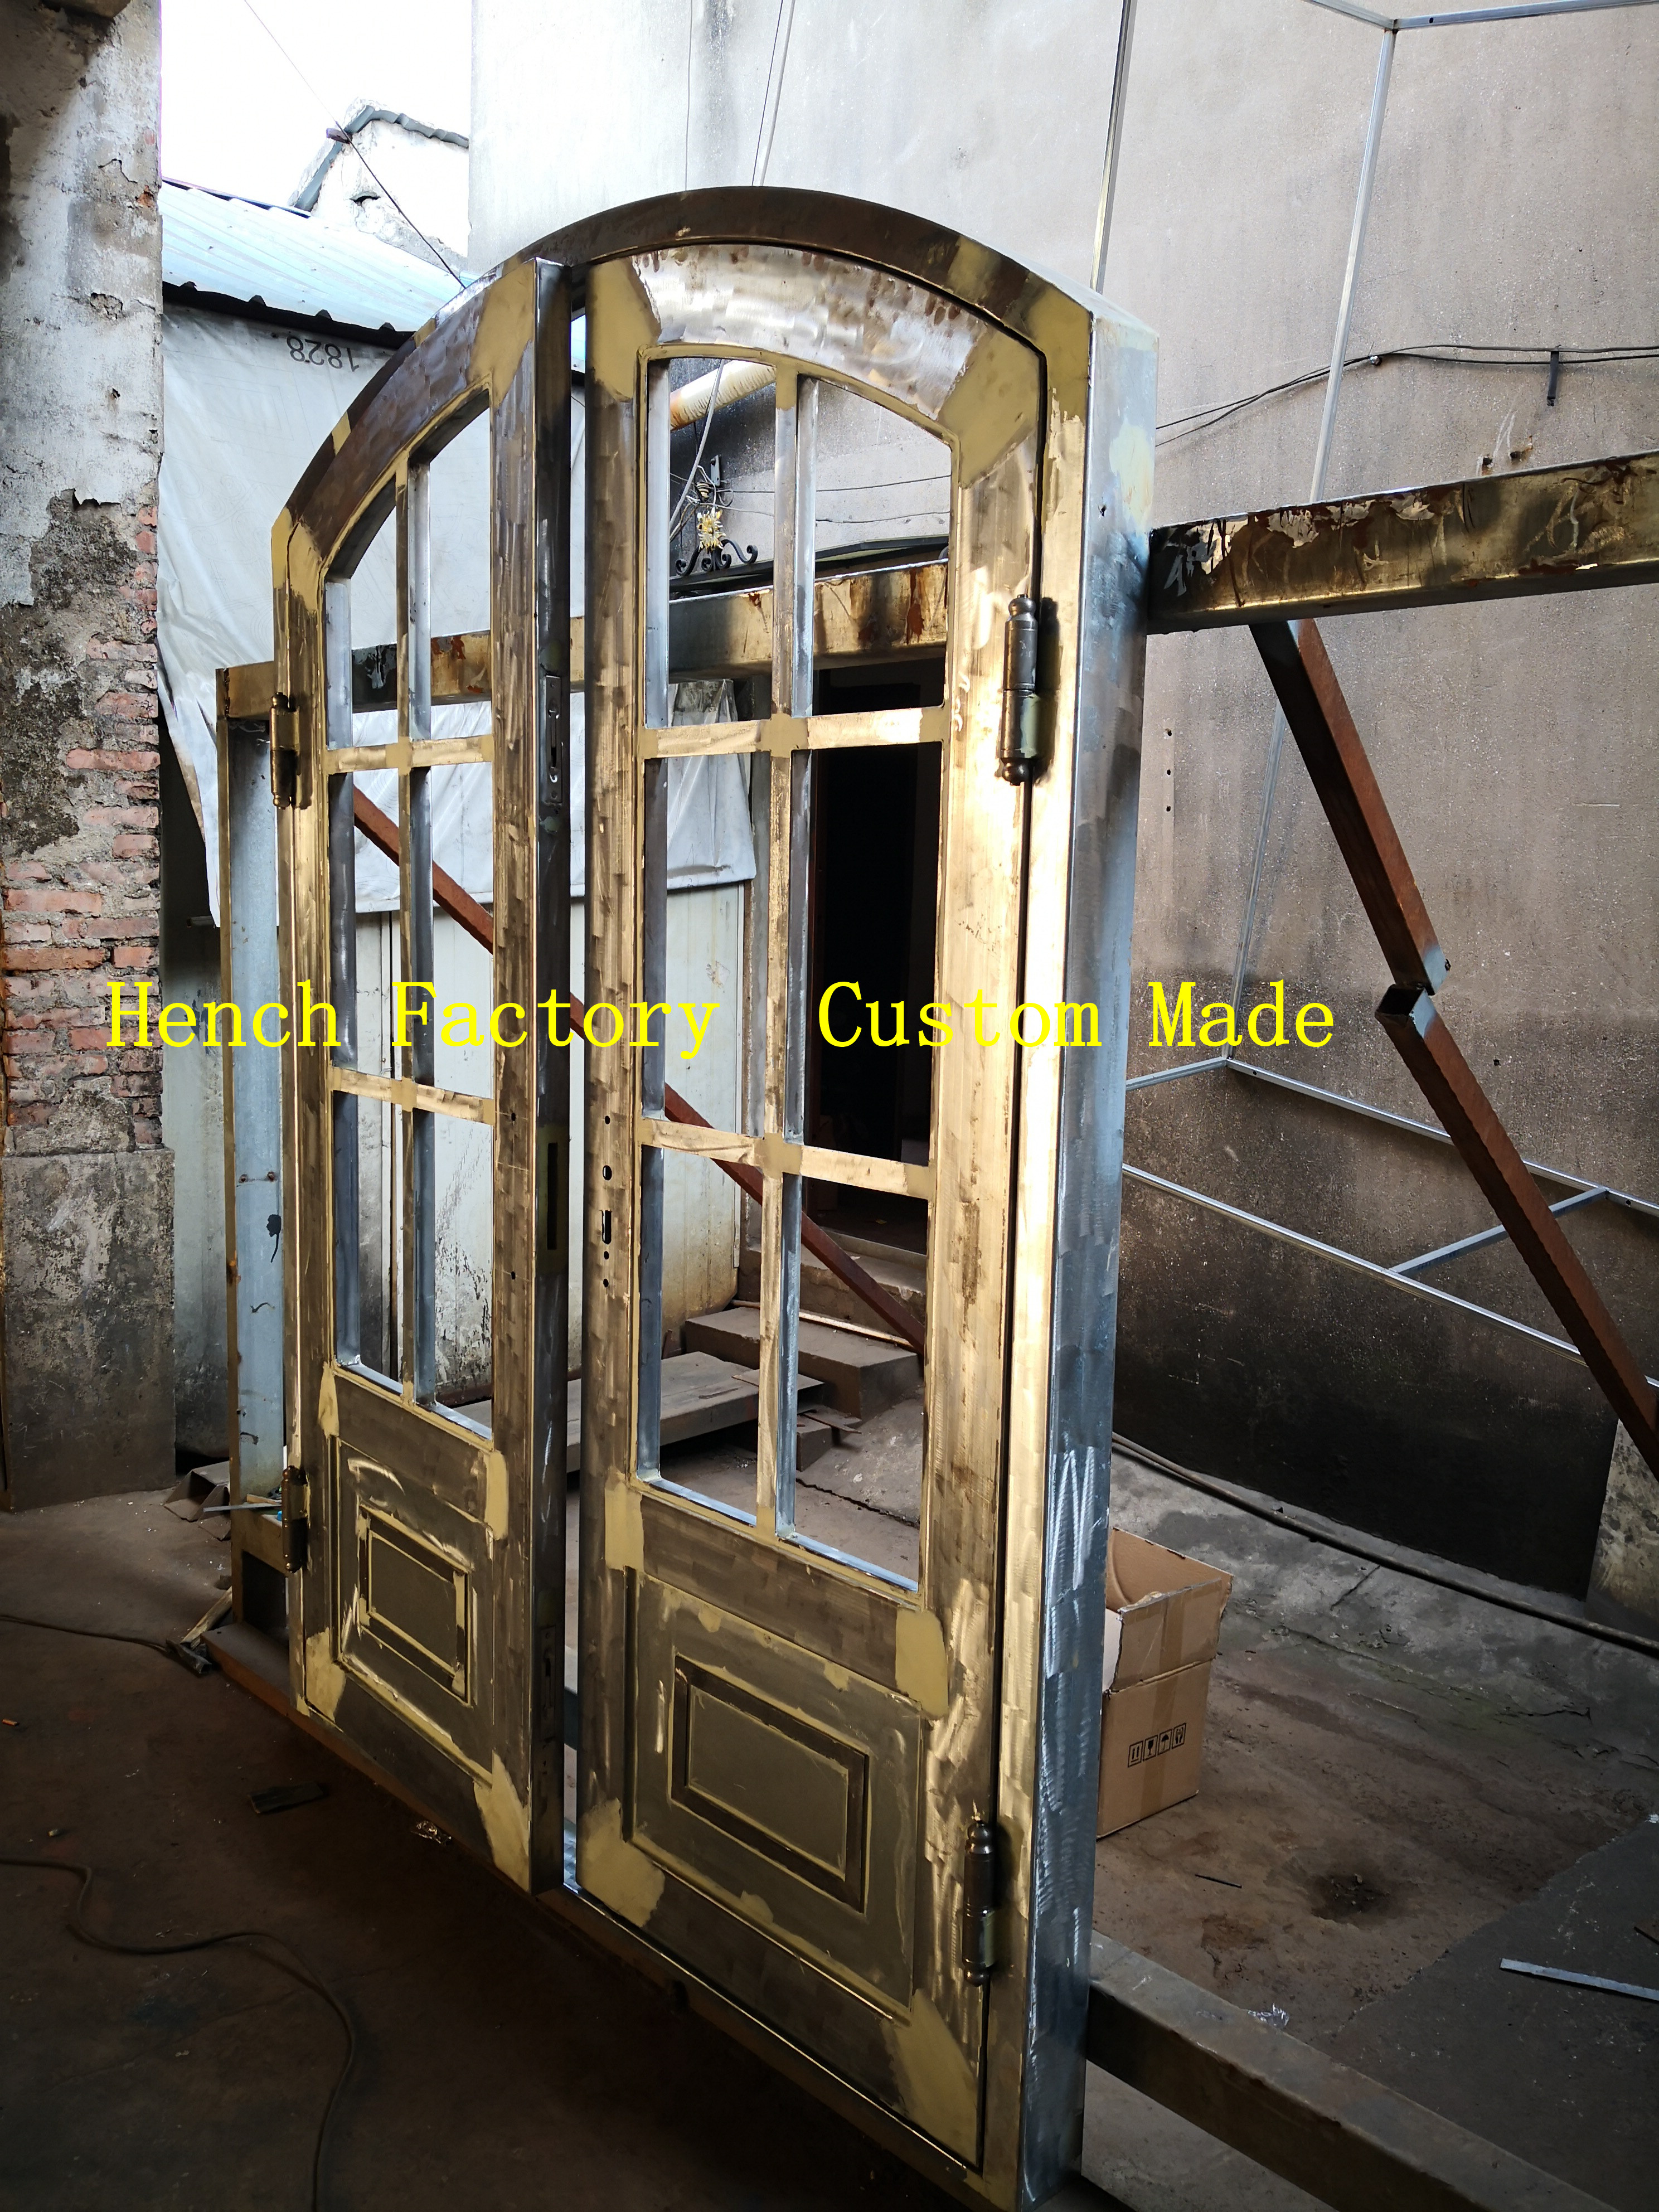 Shanghai Hench Brand China Factory 100% Custom Made Sale Australia Ornamental Iron Security Doors